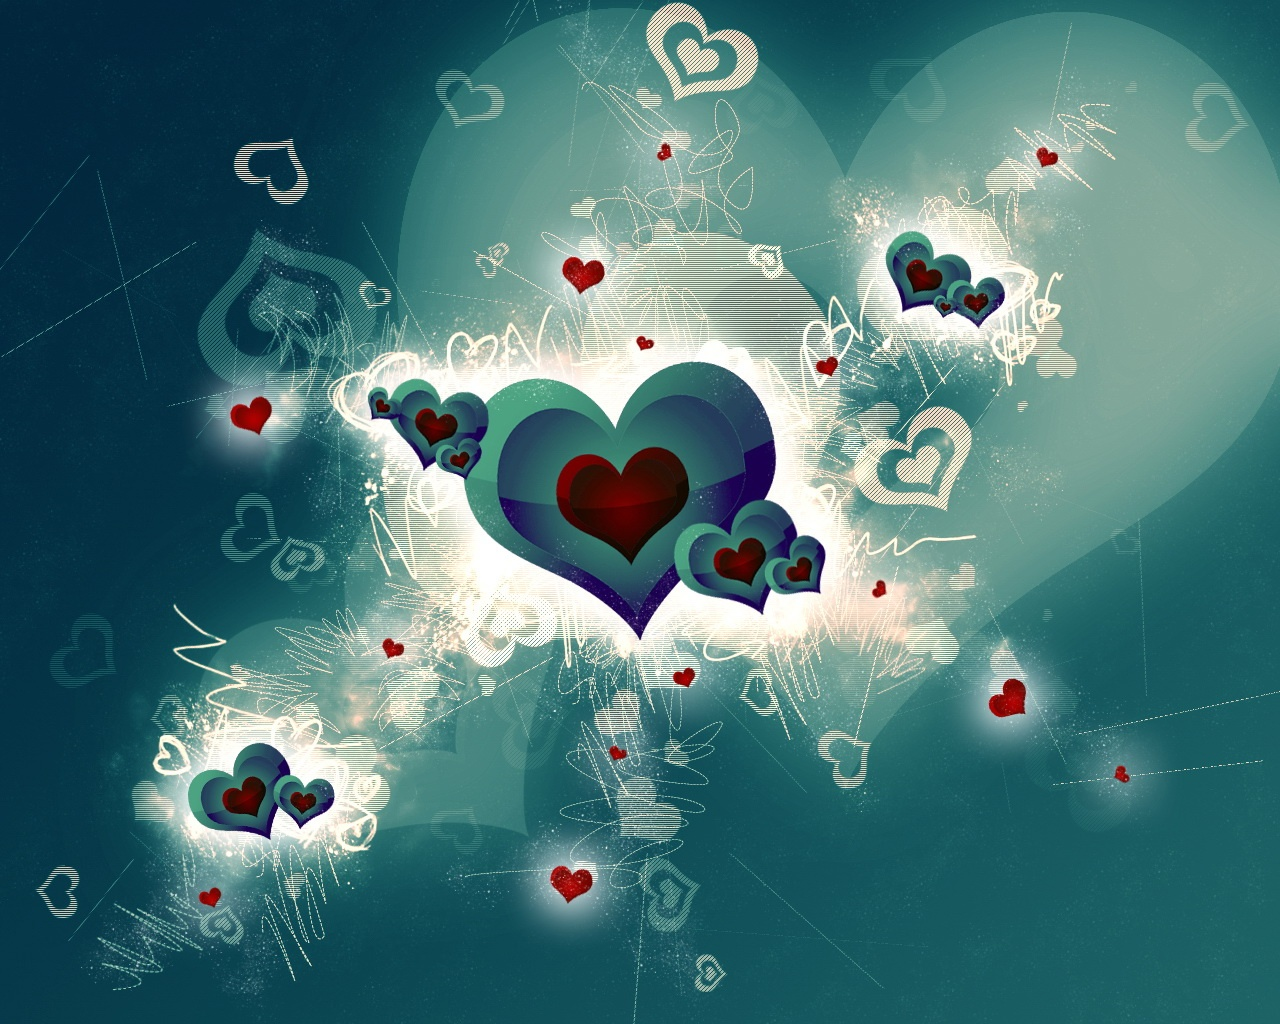 Wallpaper Love, Romance and Heart Wallpapers 1280x1024